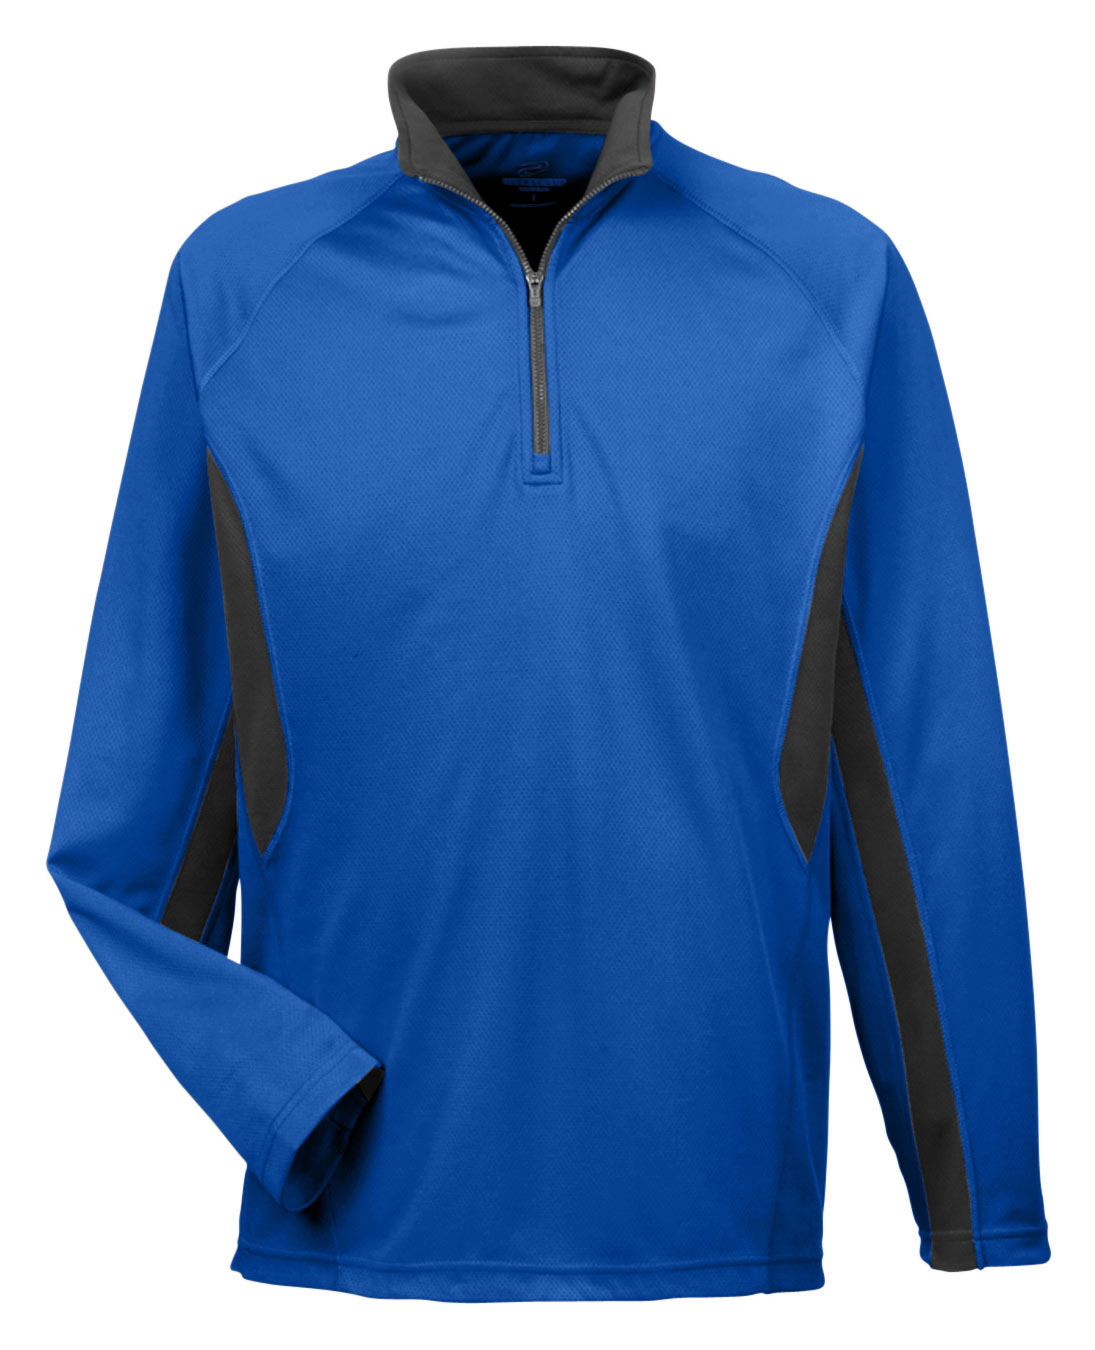 Adult Cool and  Dry Color Block Dimple Mesh 1/4 Zip Pullover